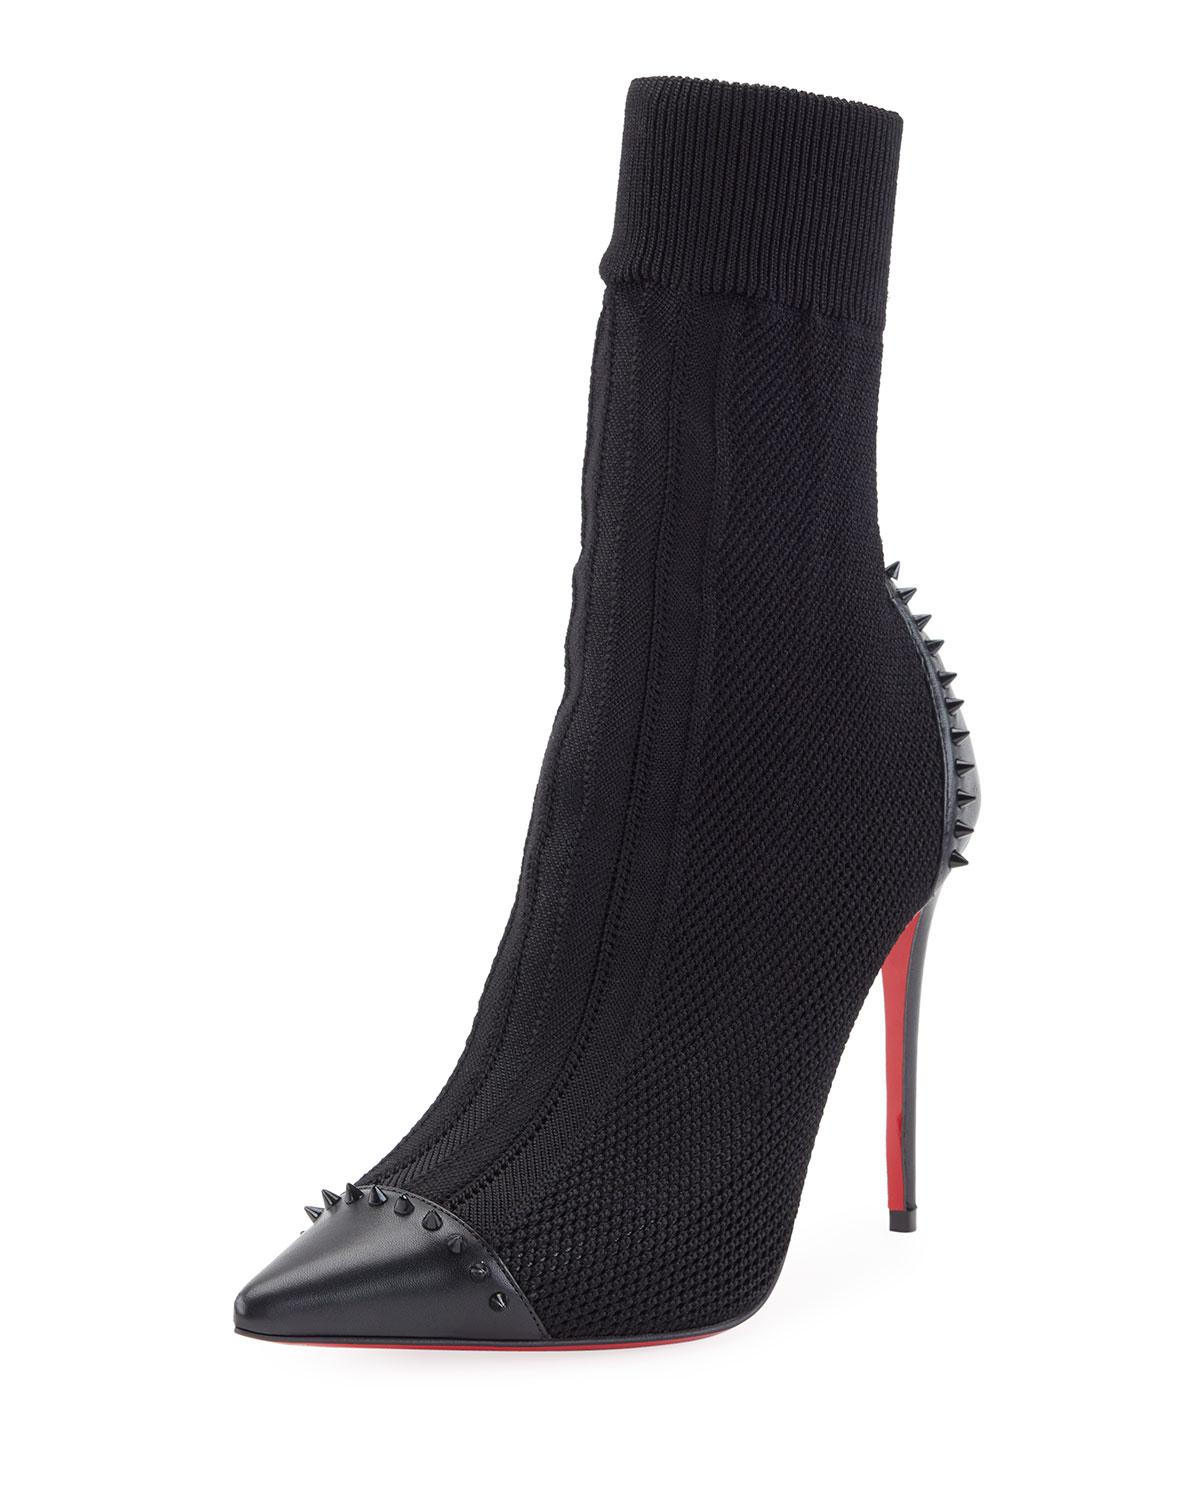 869db4736cbe Lyst - Christian Louboutin Dovi Dova Knit Red Sole Bootie in Black